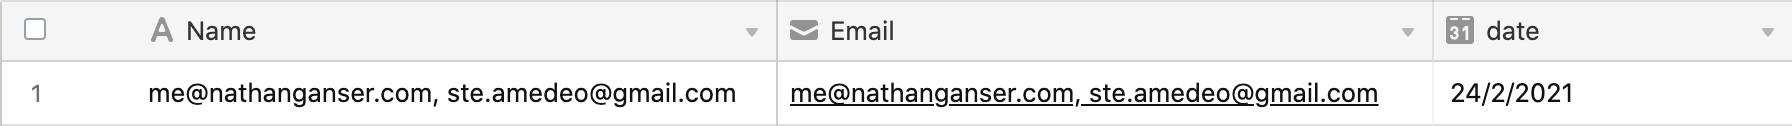 airtable gmail data.png